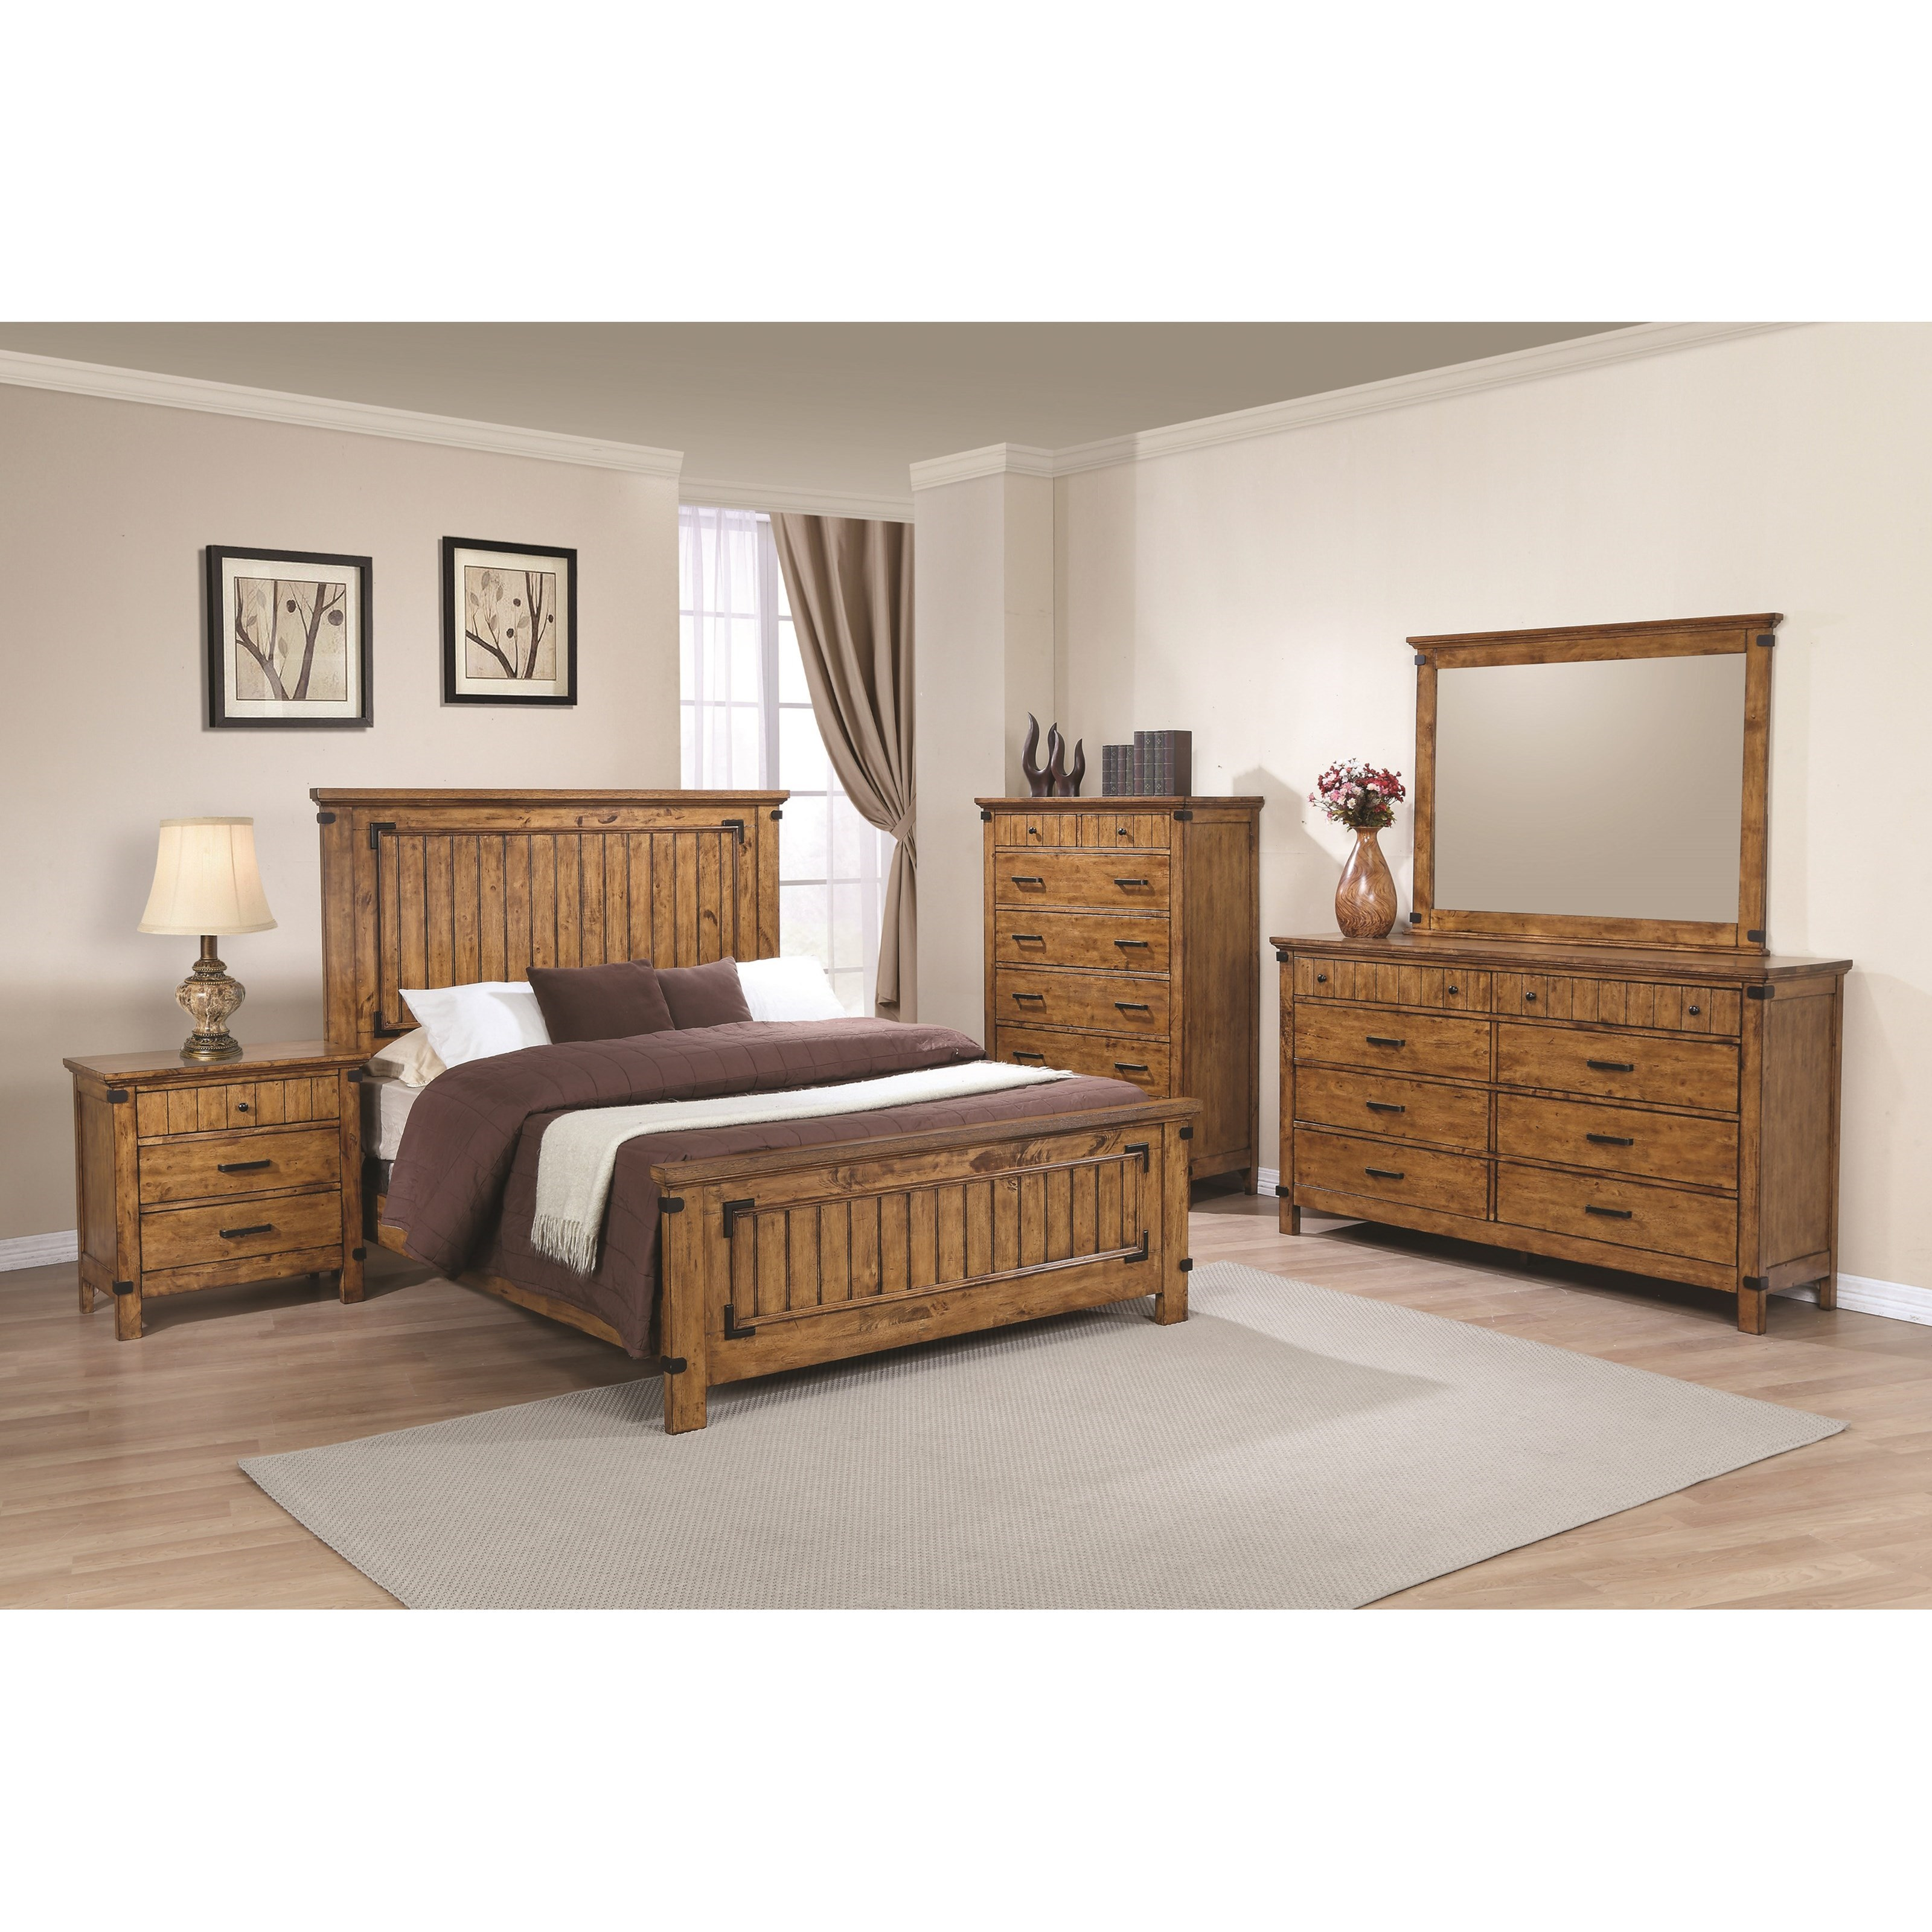 Coaster Brenner Queen Bedroom Group - Item Number: 205260 Q Bedroom Group 1